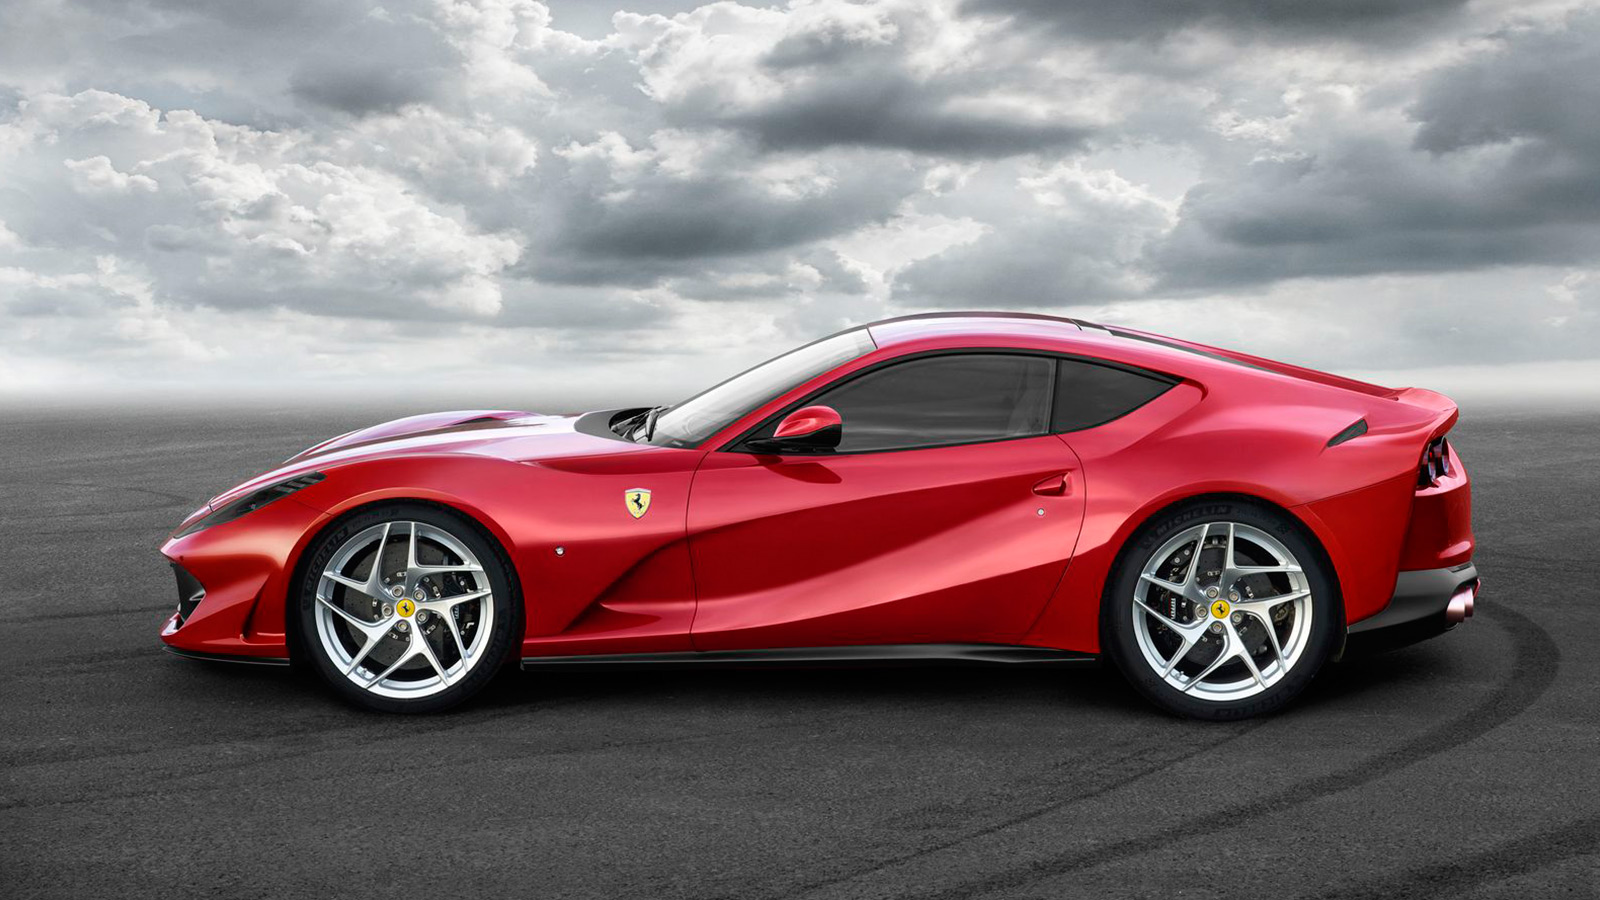 ferrari f12 new with Ferrari 812 Superfast on 2012 as well Mansory Impresses With Its Tuned Mercedes Benz G63 Amg 6x6 together with Ferrari festeggia un nuovo record vendite nel 2017 furthermore Pagani huayra r concept Wallpapers as well 4x4 Off Road C er Trucks 9531902beb636db1.